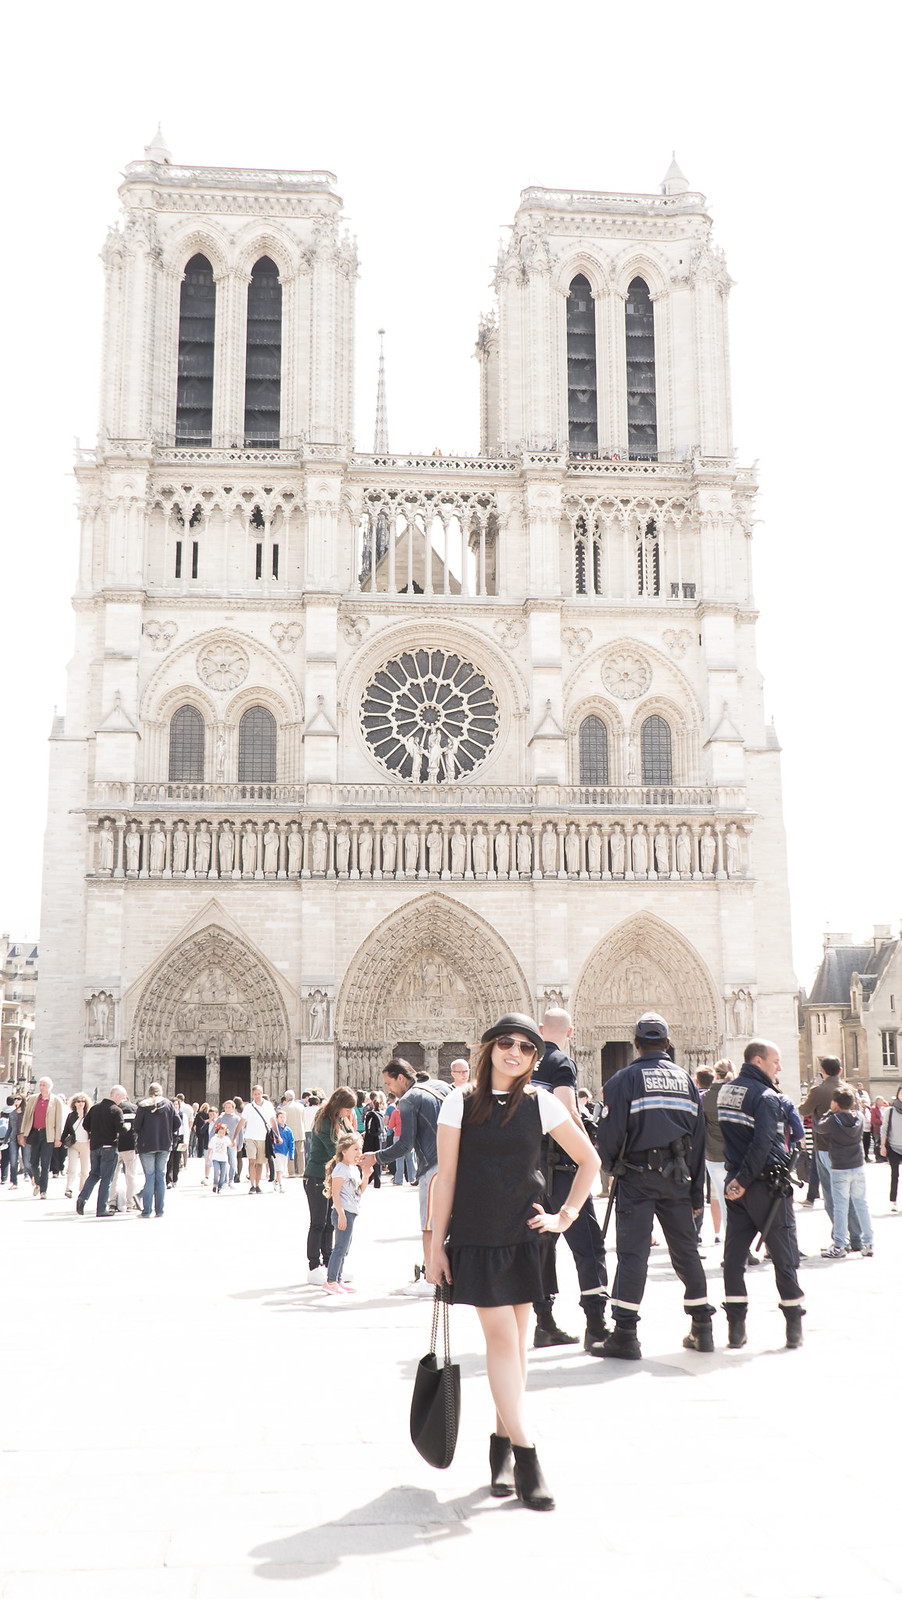 Notre Dame | August 2014